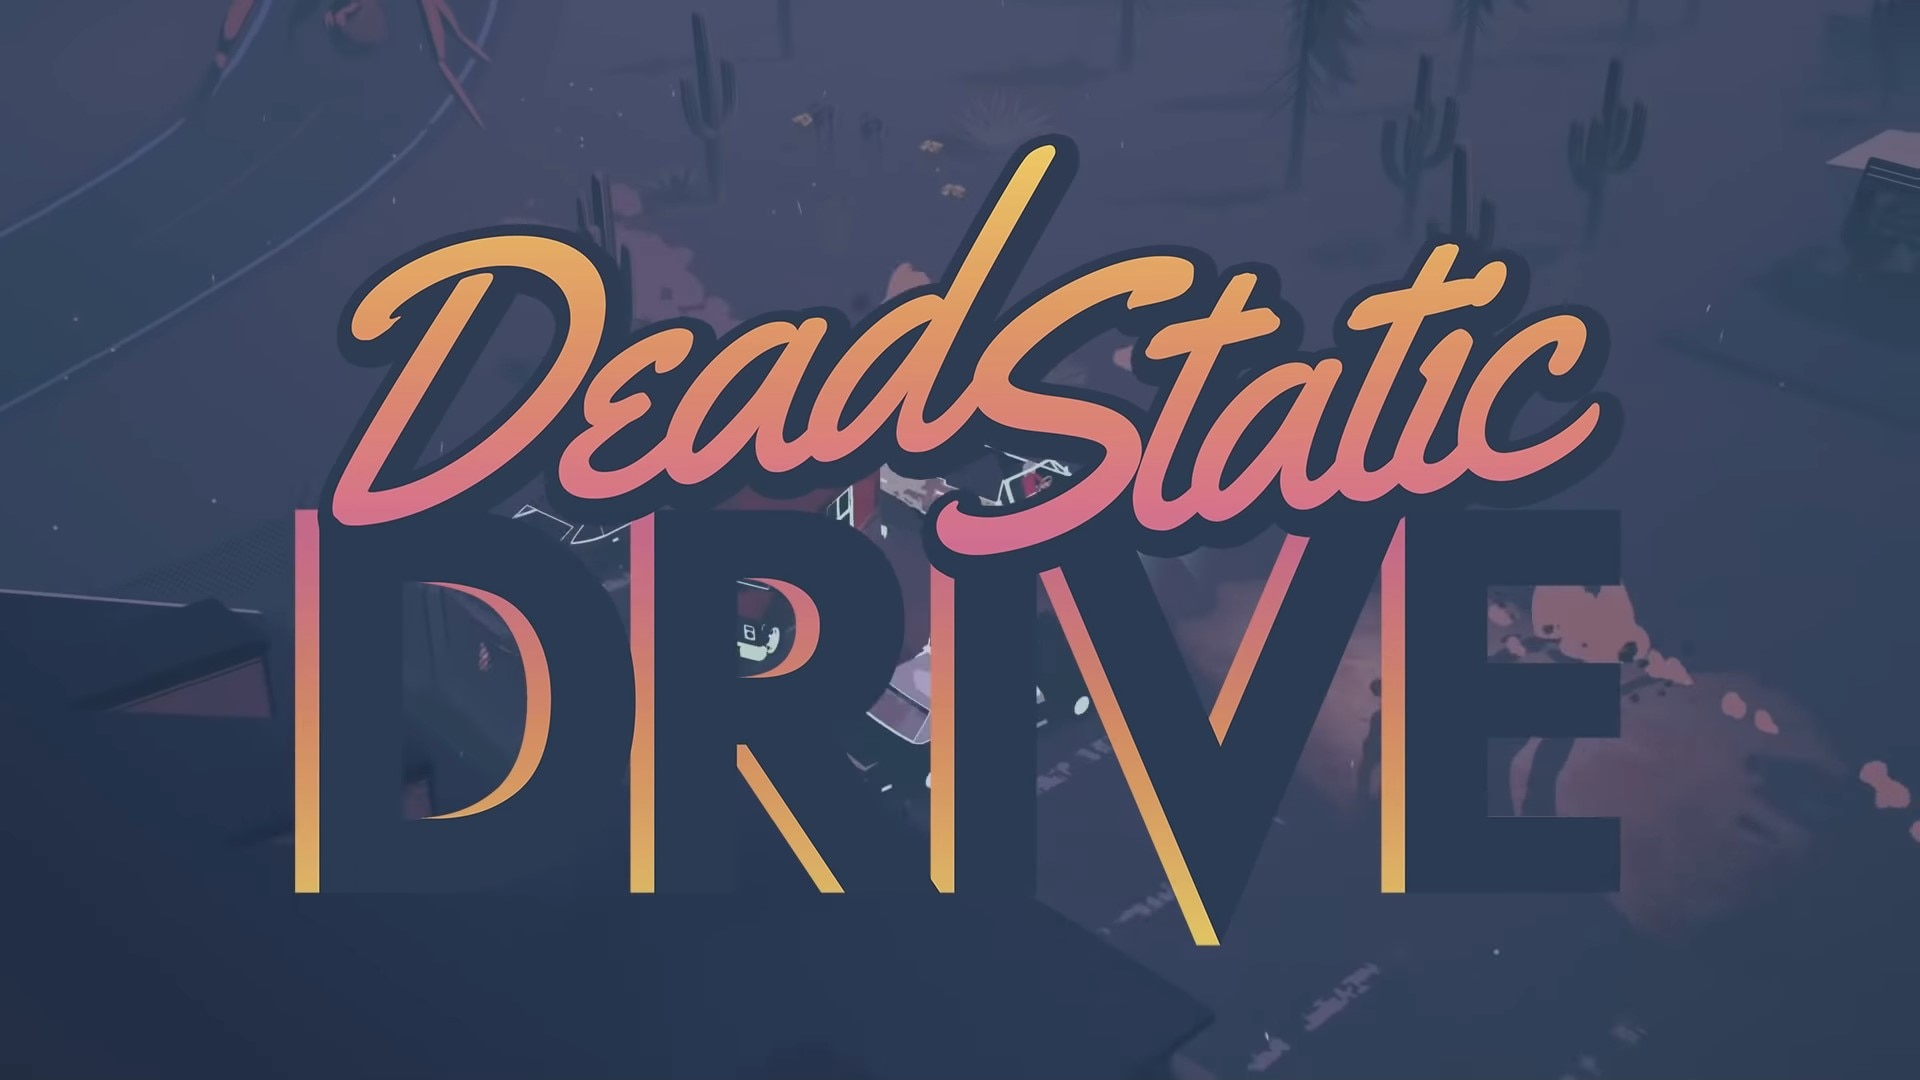 Dead Static Drive - DEAD STATIC DRIVE IS GRAND THEFT CTHULHU (AND TREMORS)